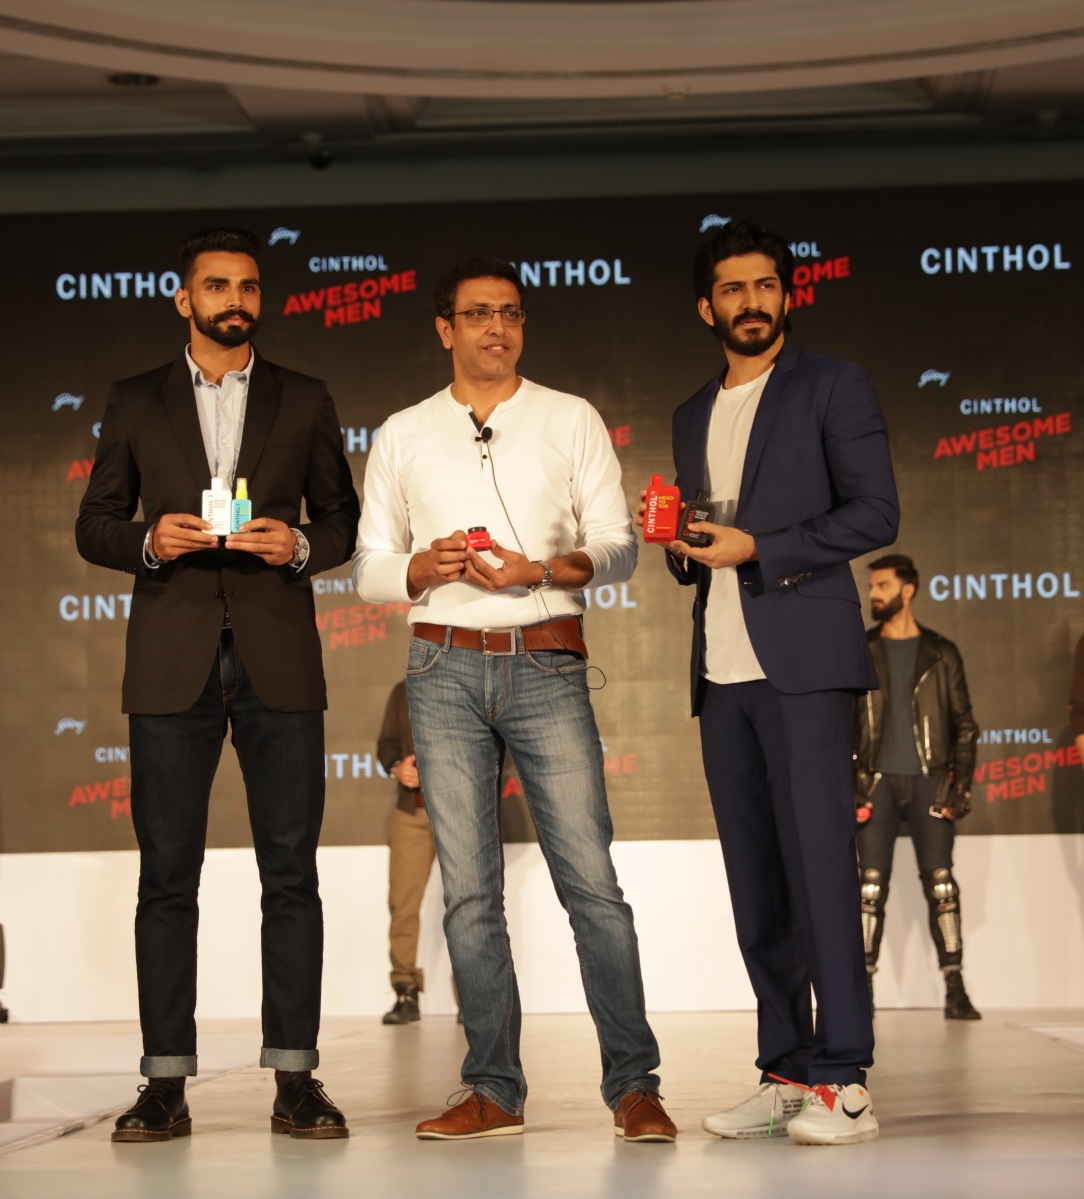 Godrej LAUNCHES CINTHOL'S ALL NEW MEN'S GROOMING RANGE